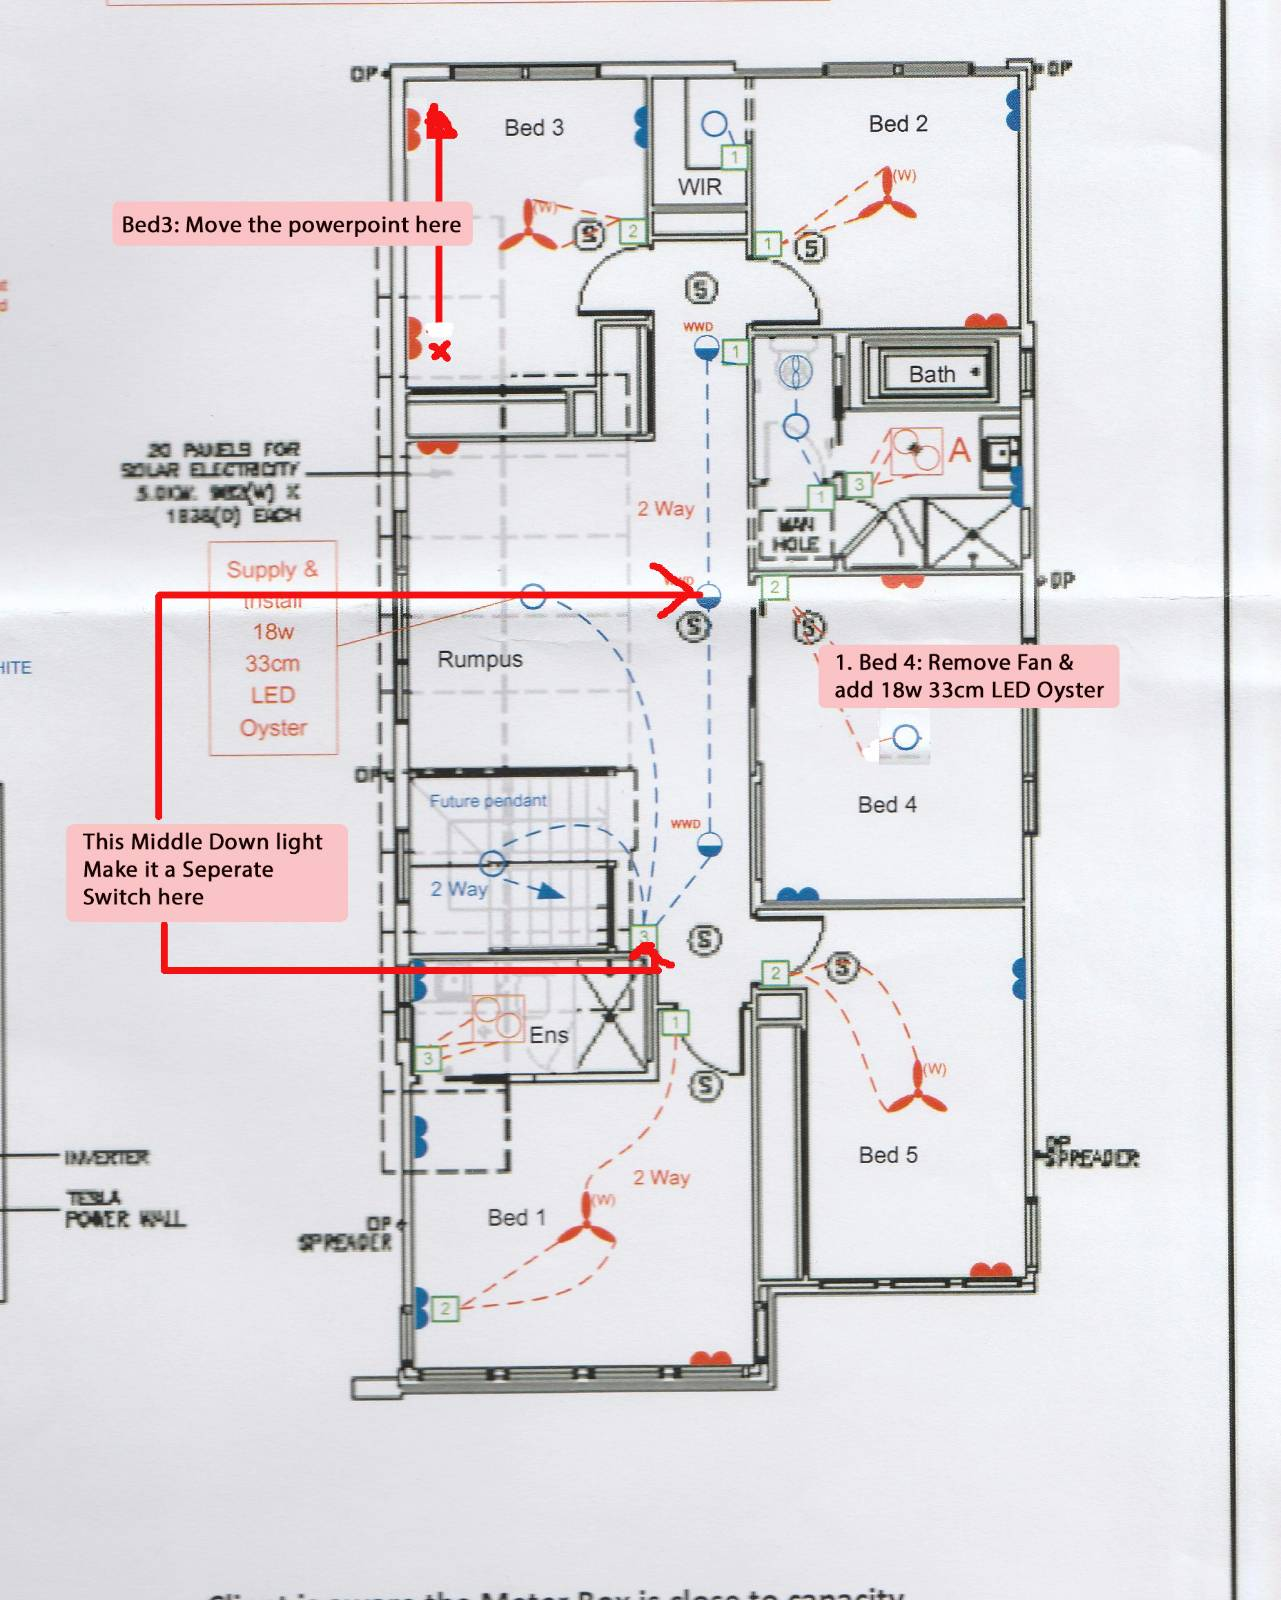 Electrical Plan Homeone Wiring Library Pin Trike Diagram On Pinterest Like Add A Comment To Ideaboard Share